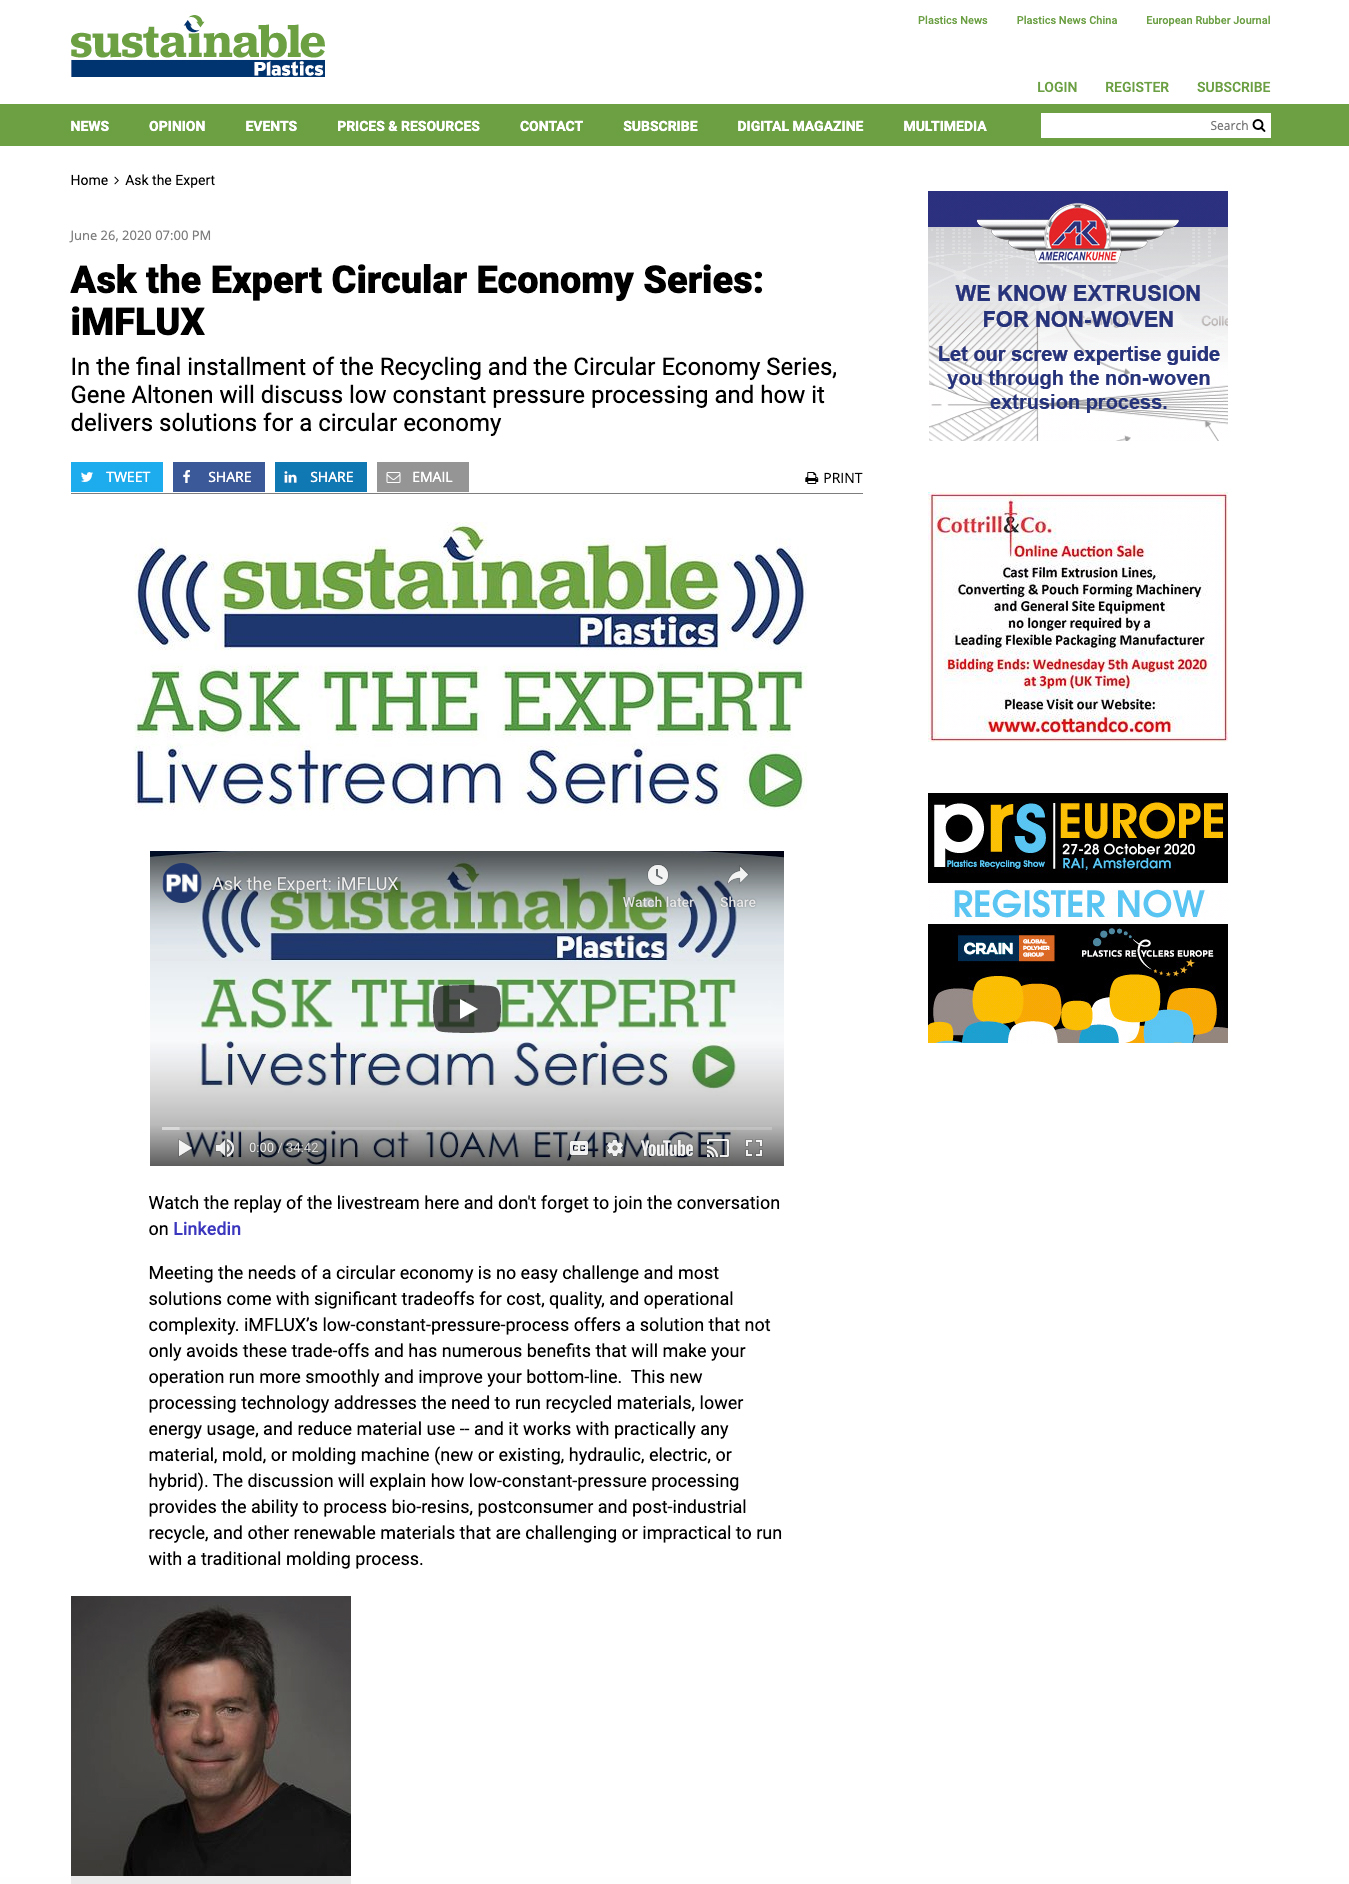 sustainable-plastics-ask-the-expert